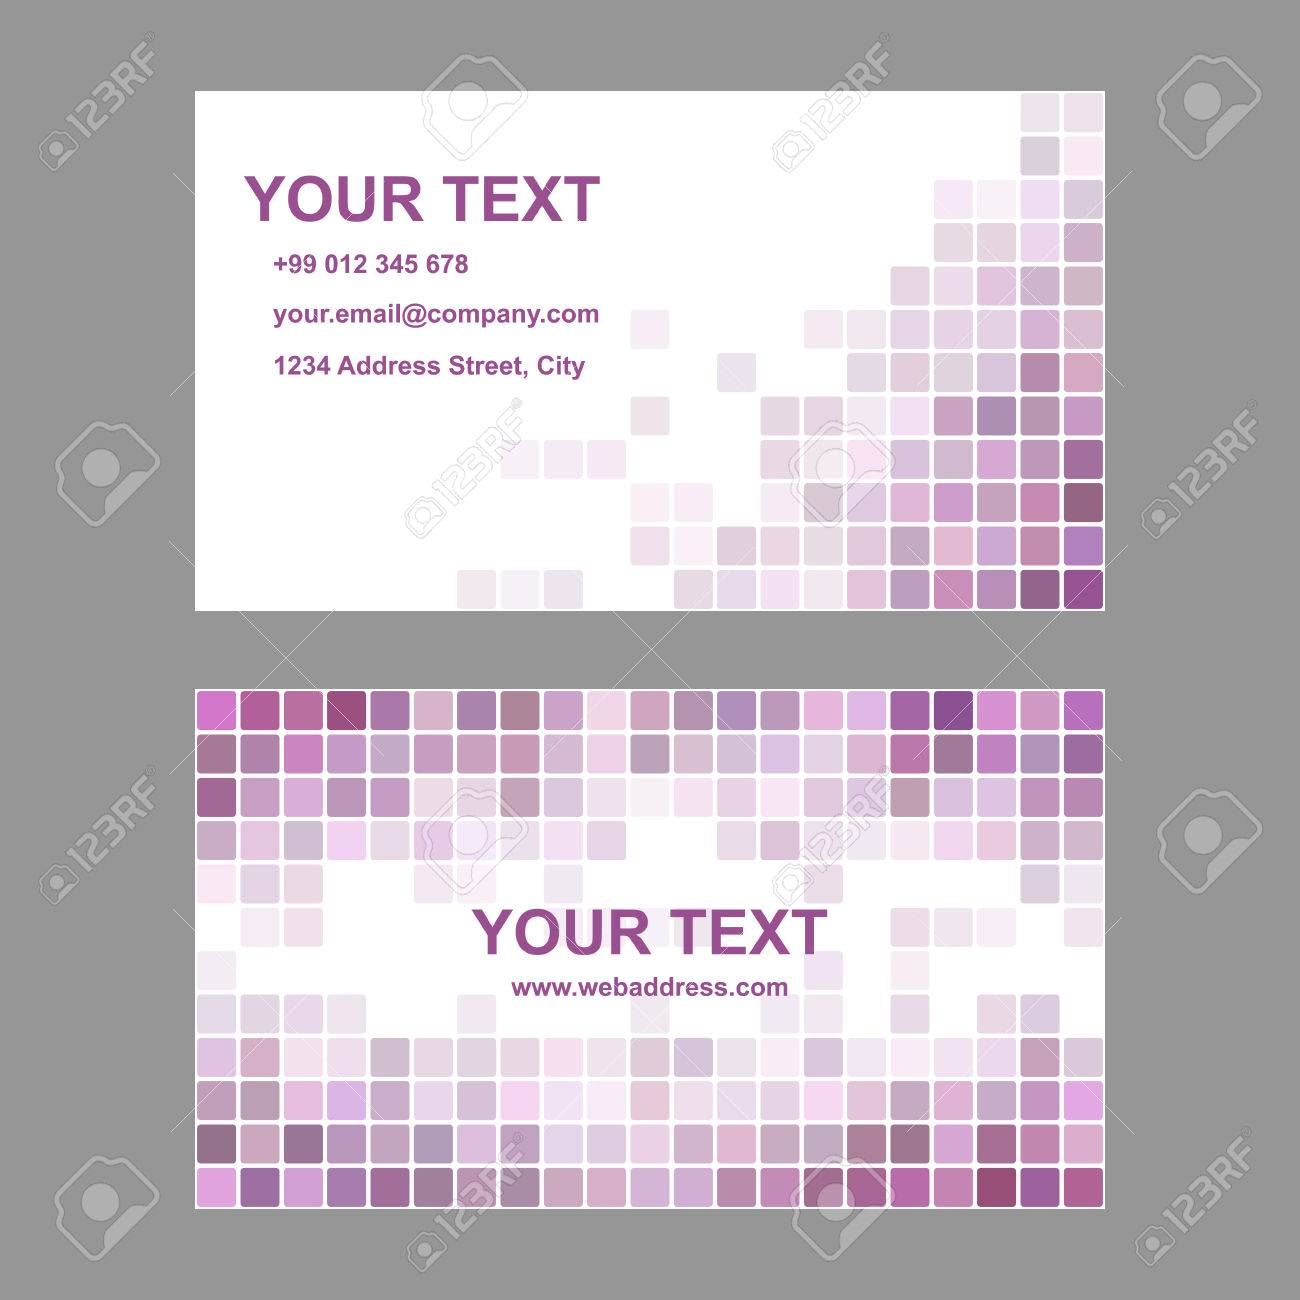 Purple Abstract Business Card Template Background Design From ...